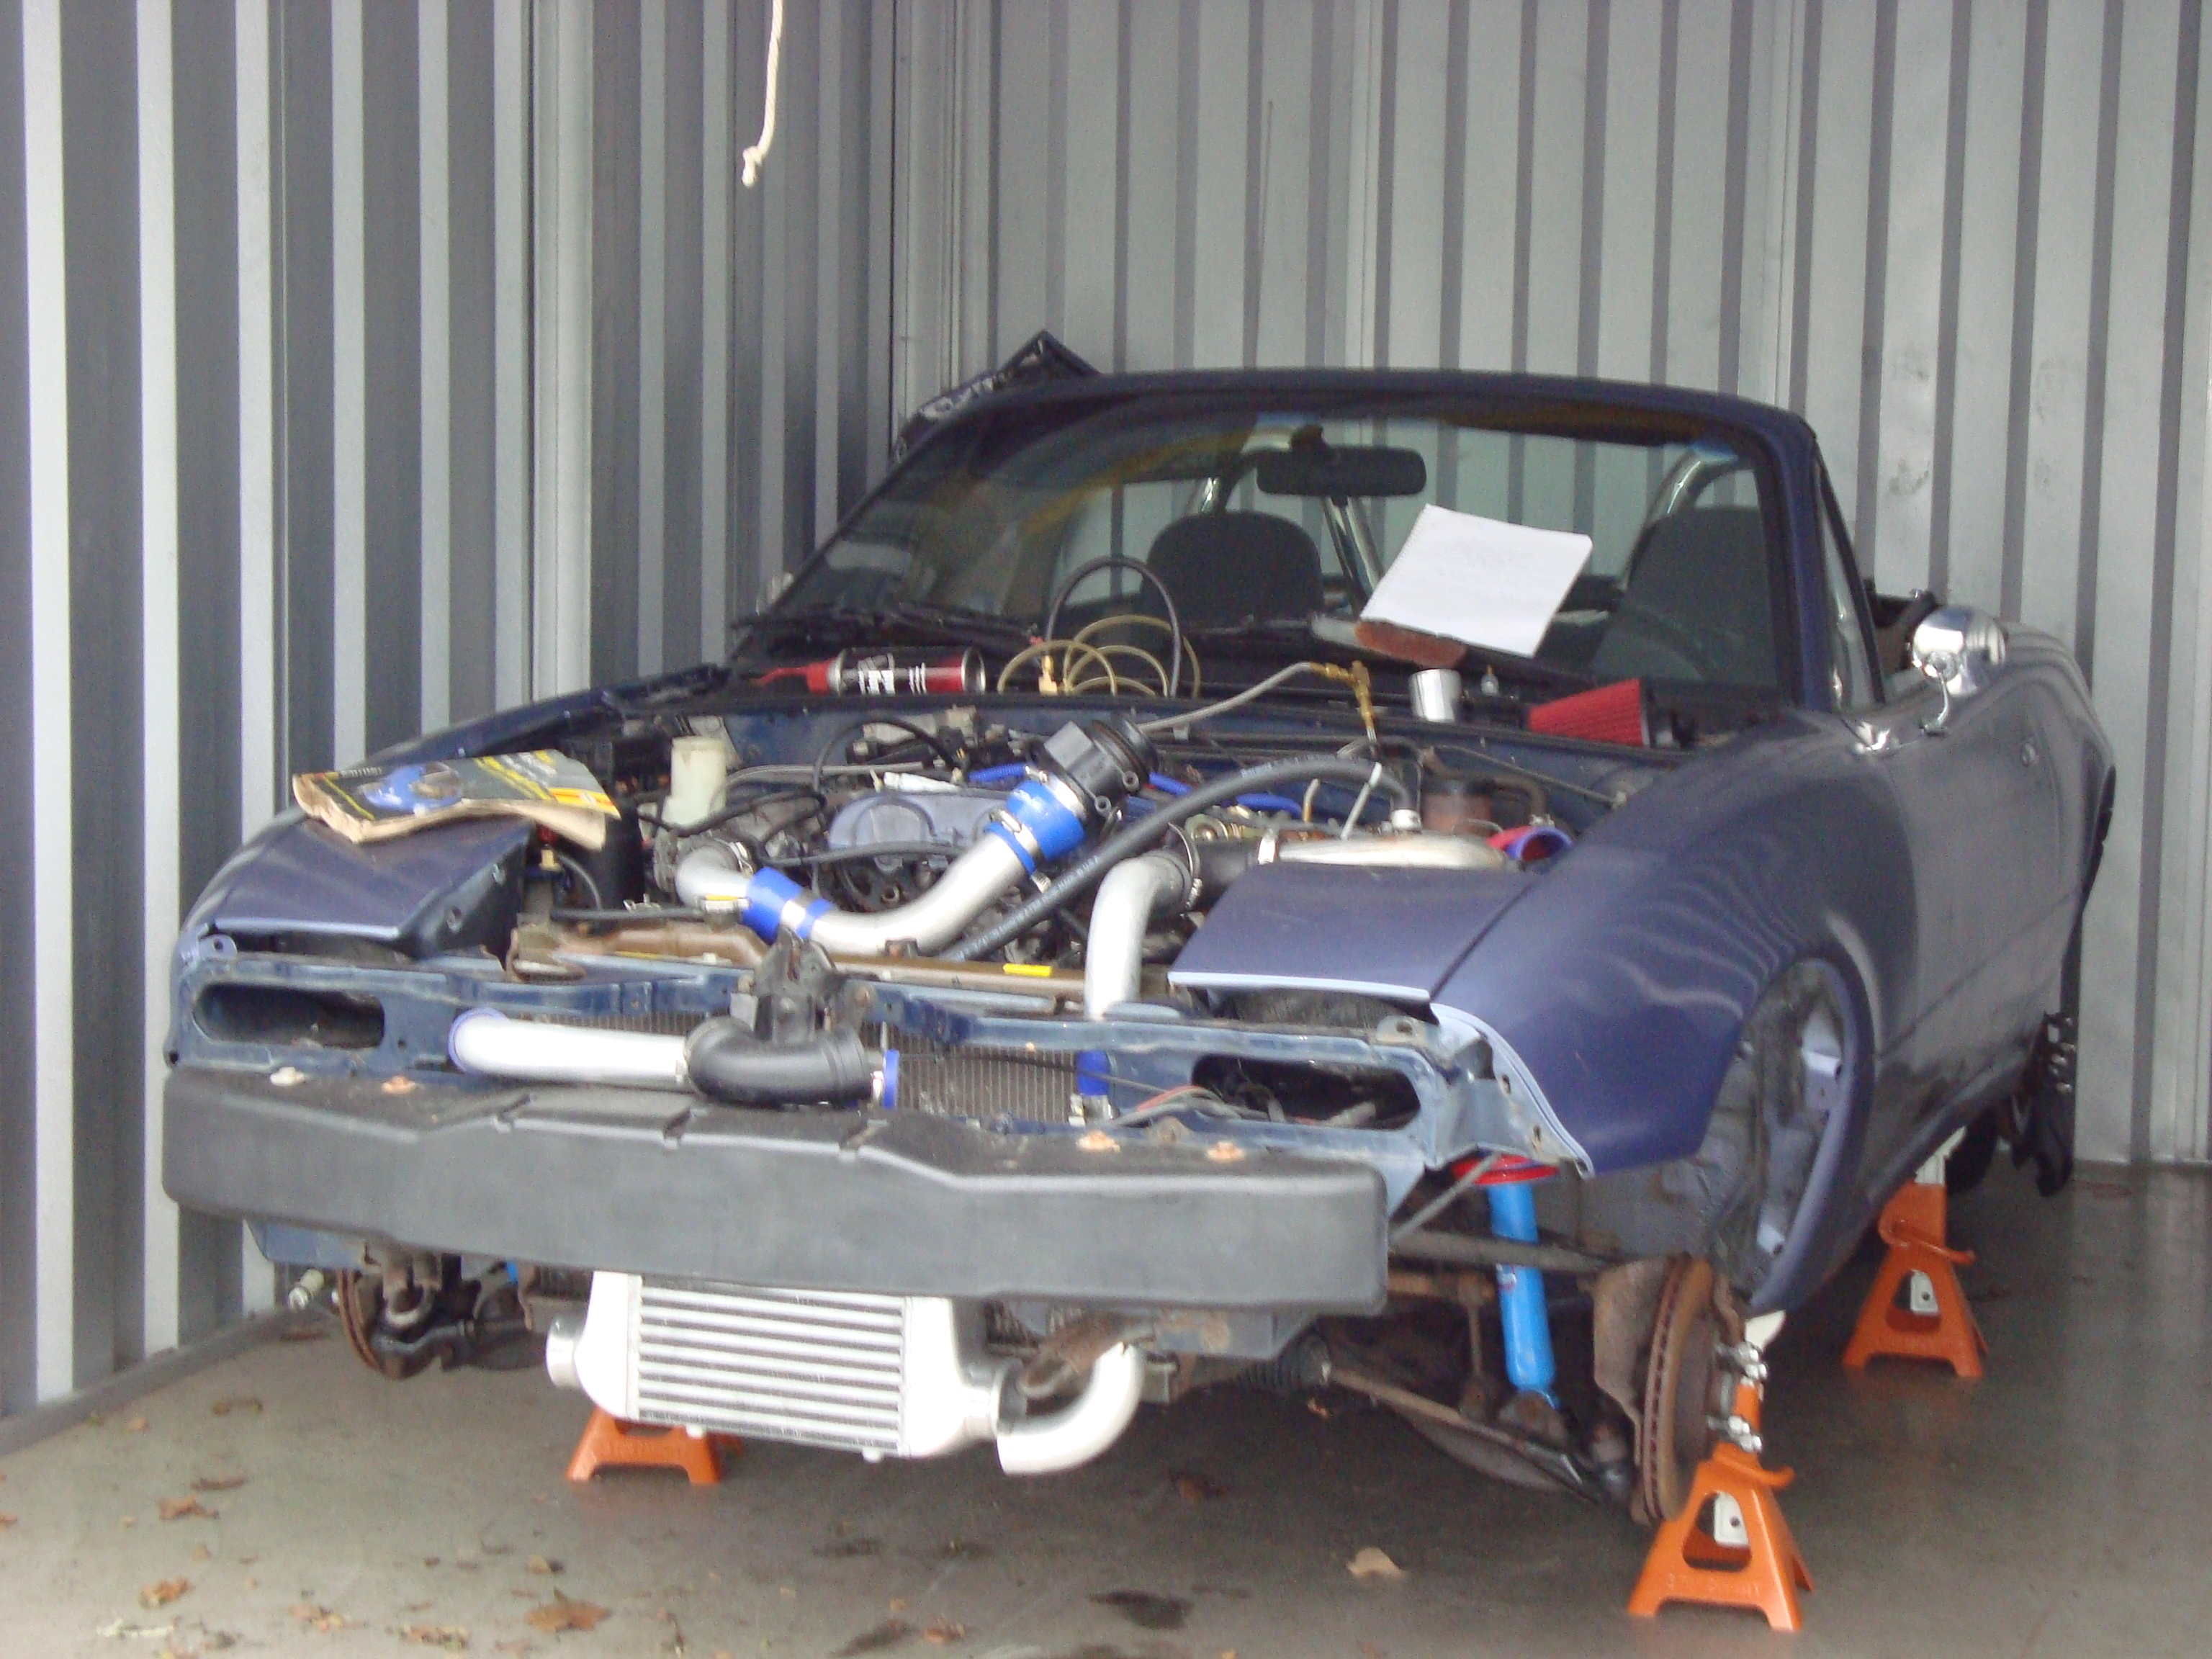 Project1984 1996 Mazda Miata MX-5